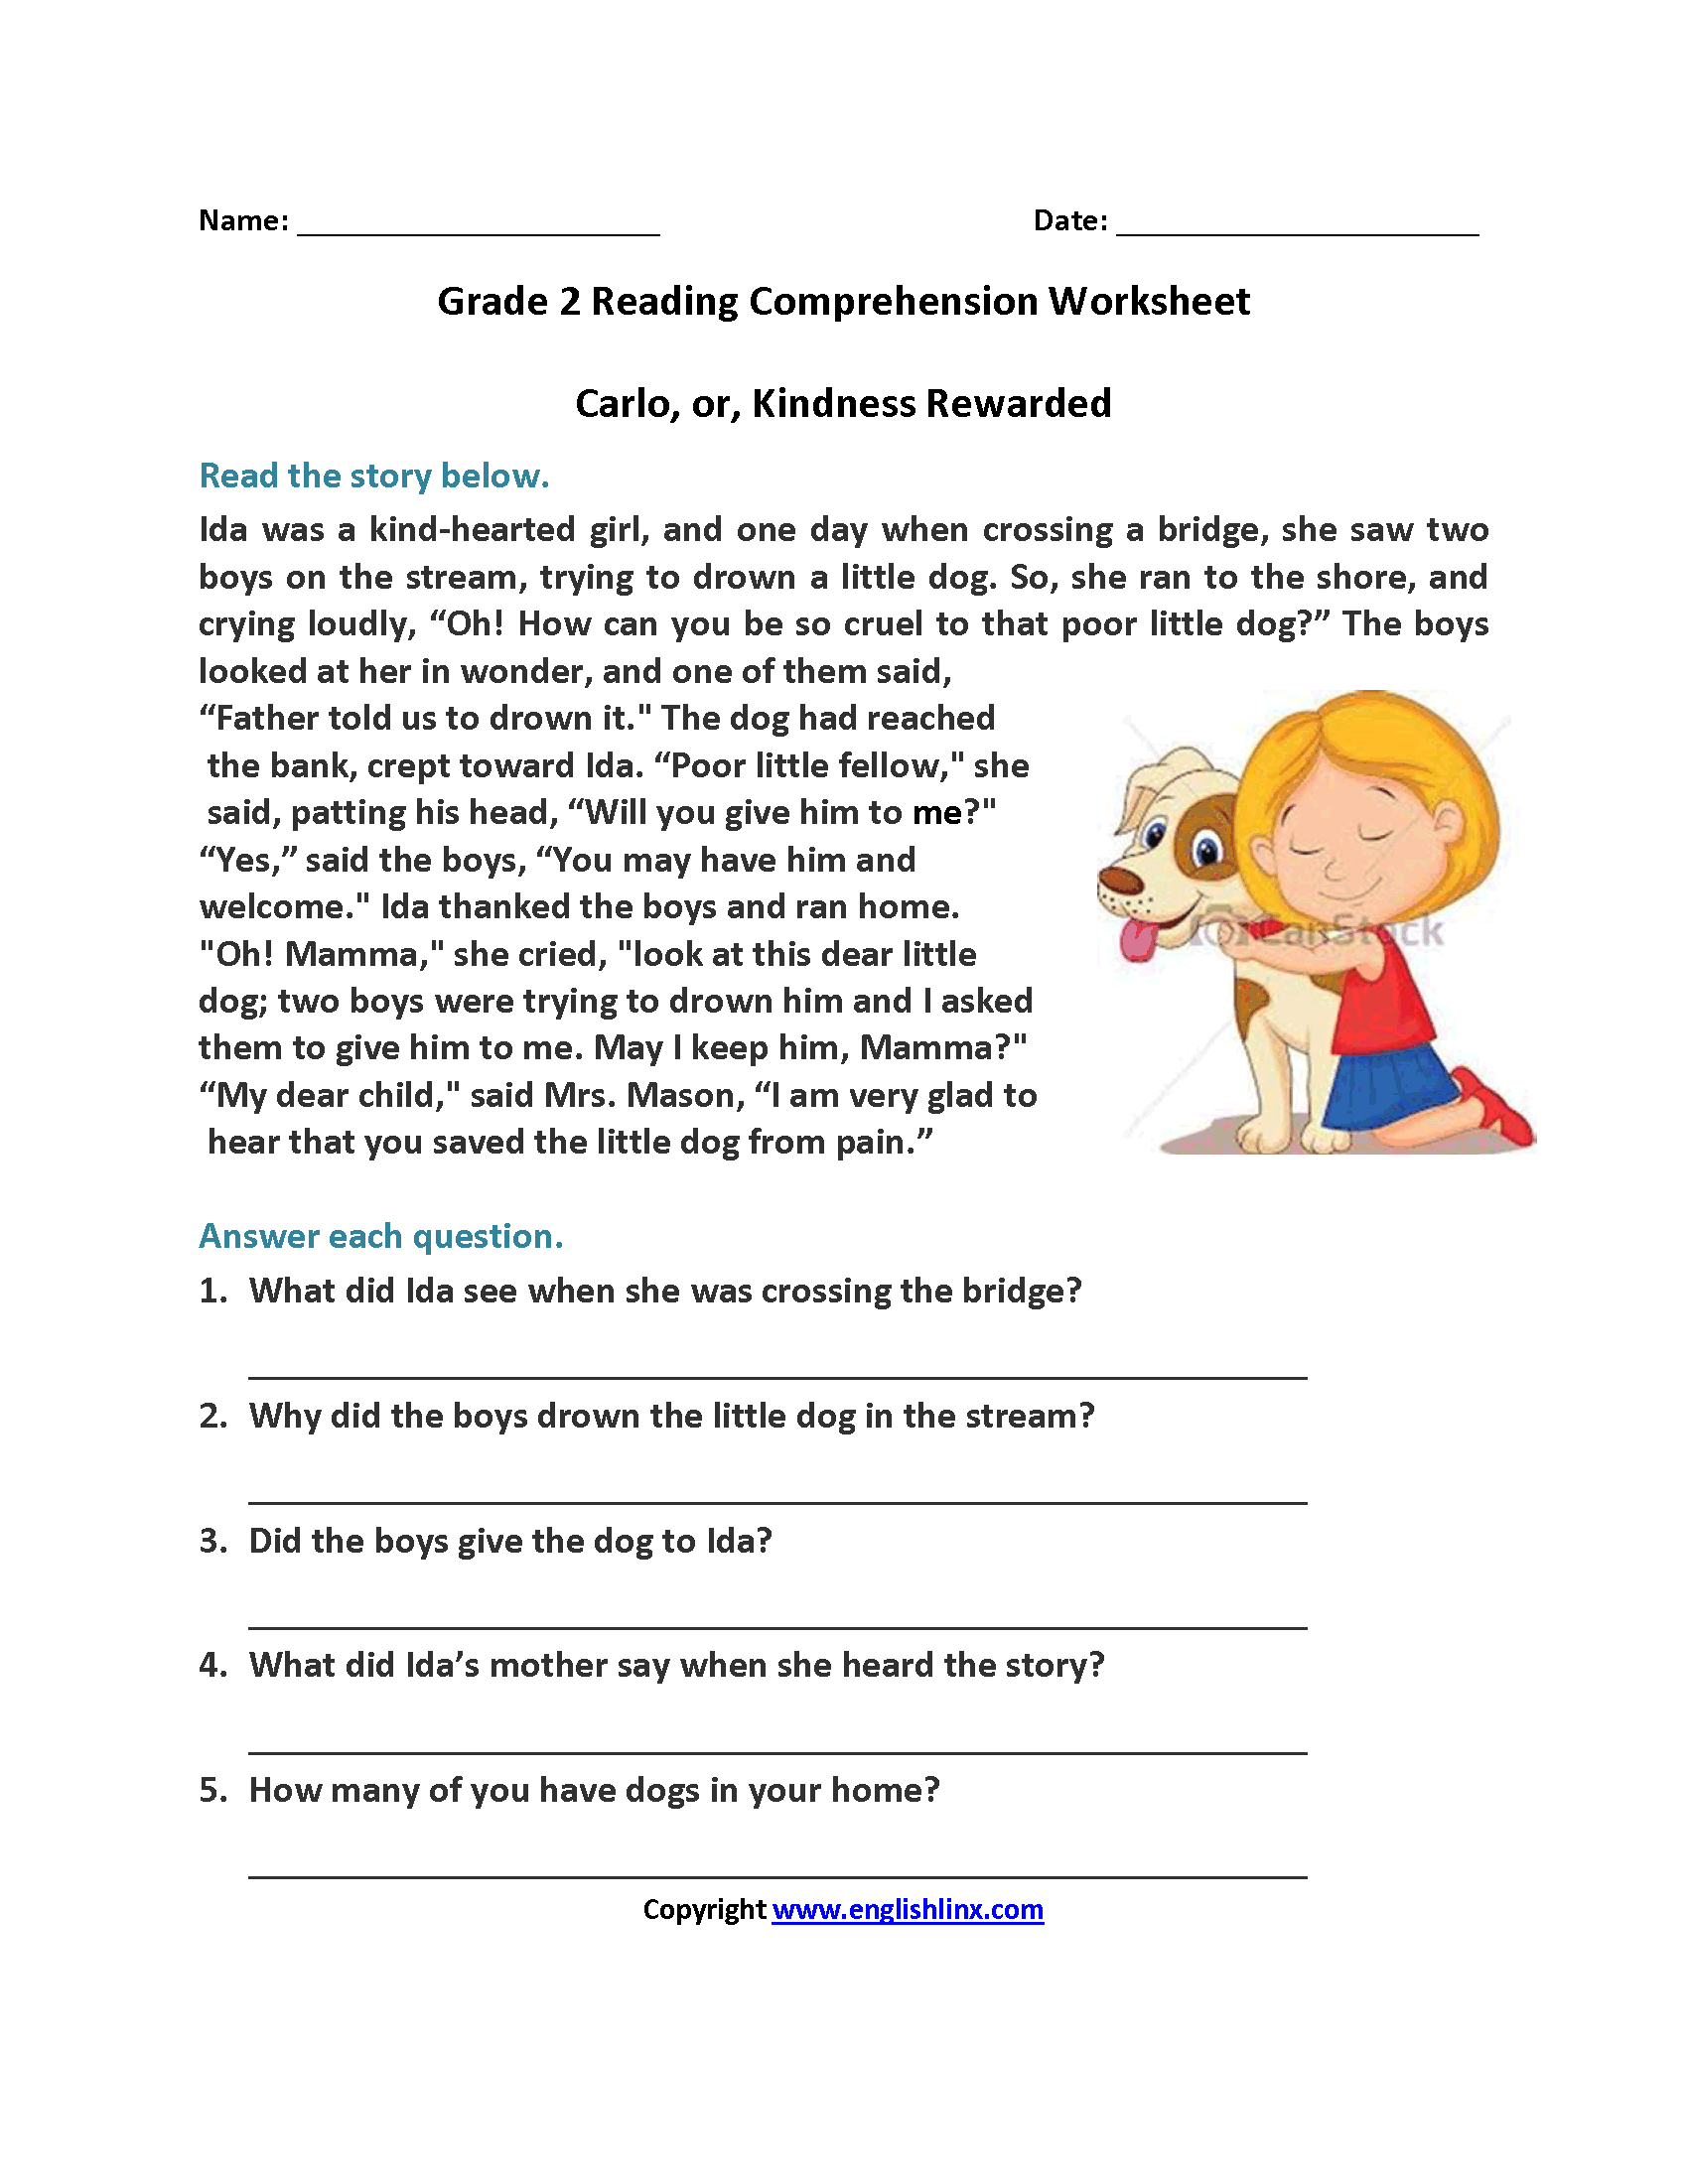 - Carlo Or Kindness Rewarded Second Grade Reading Worksheets (With